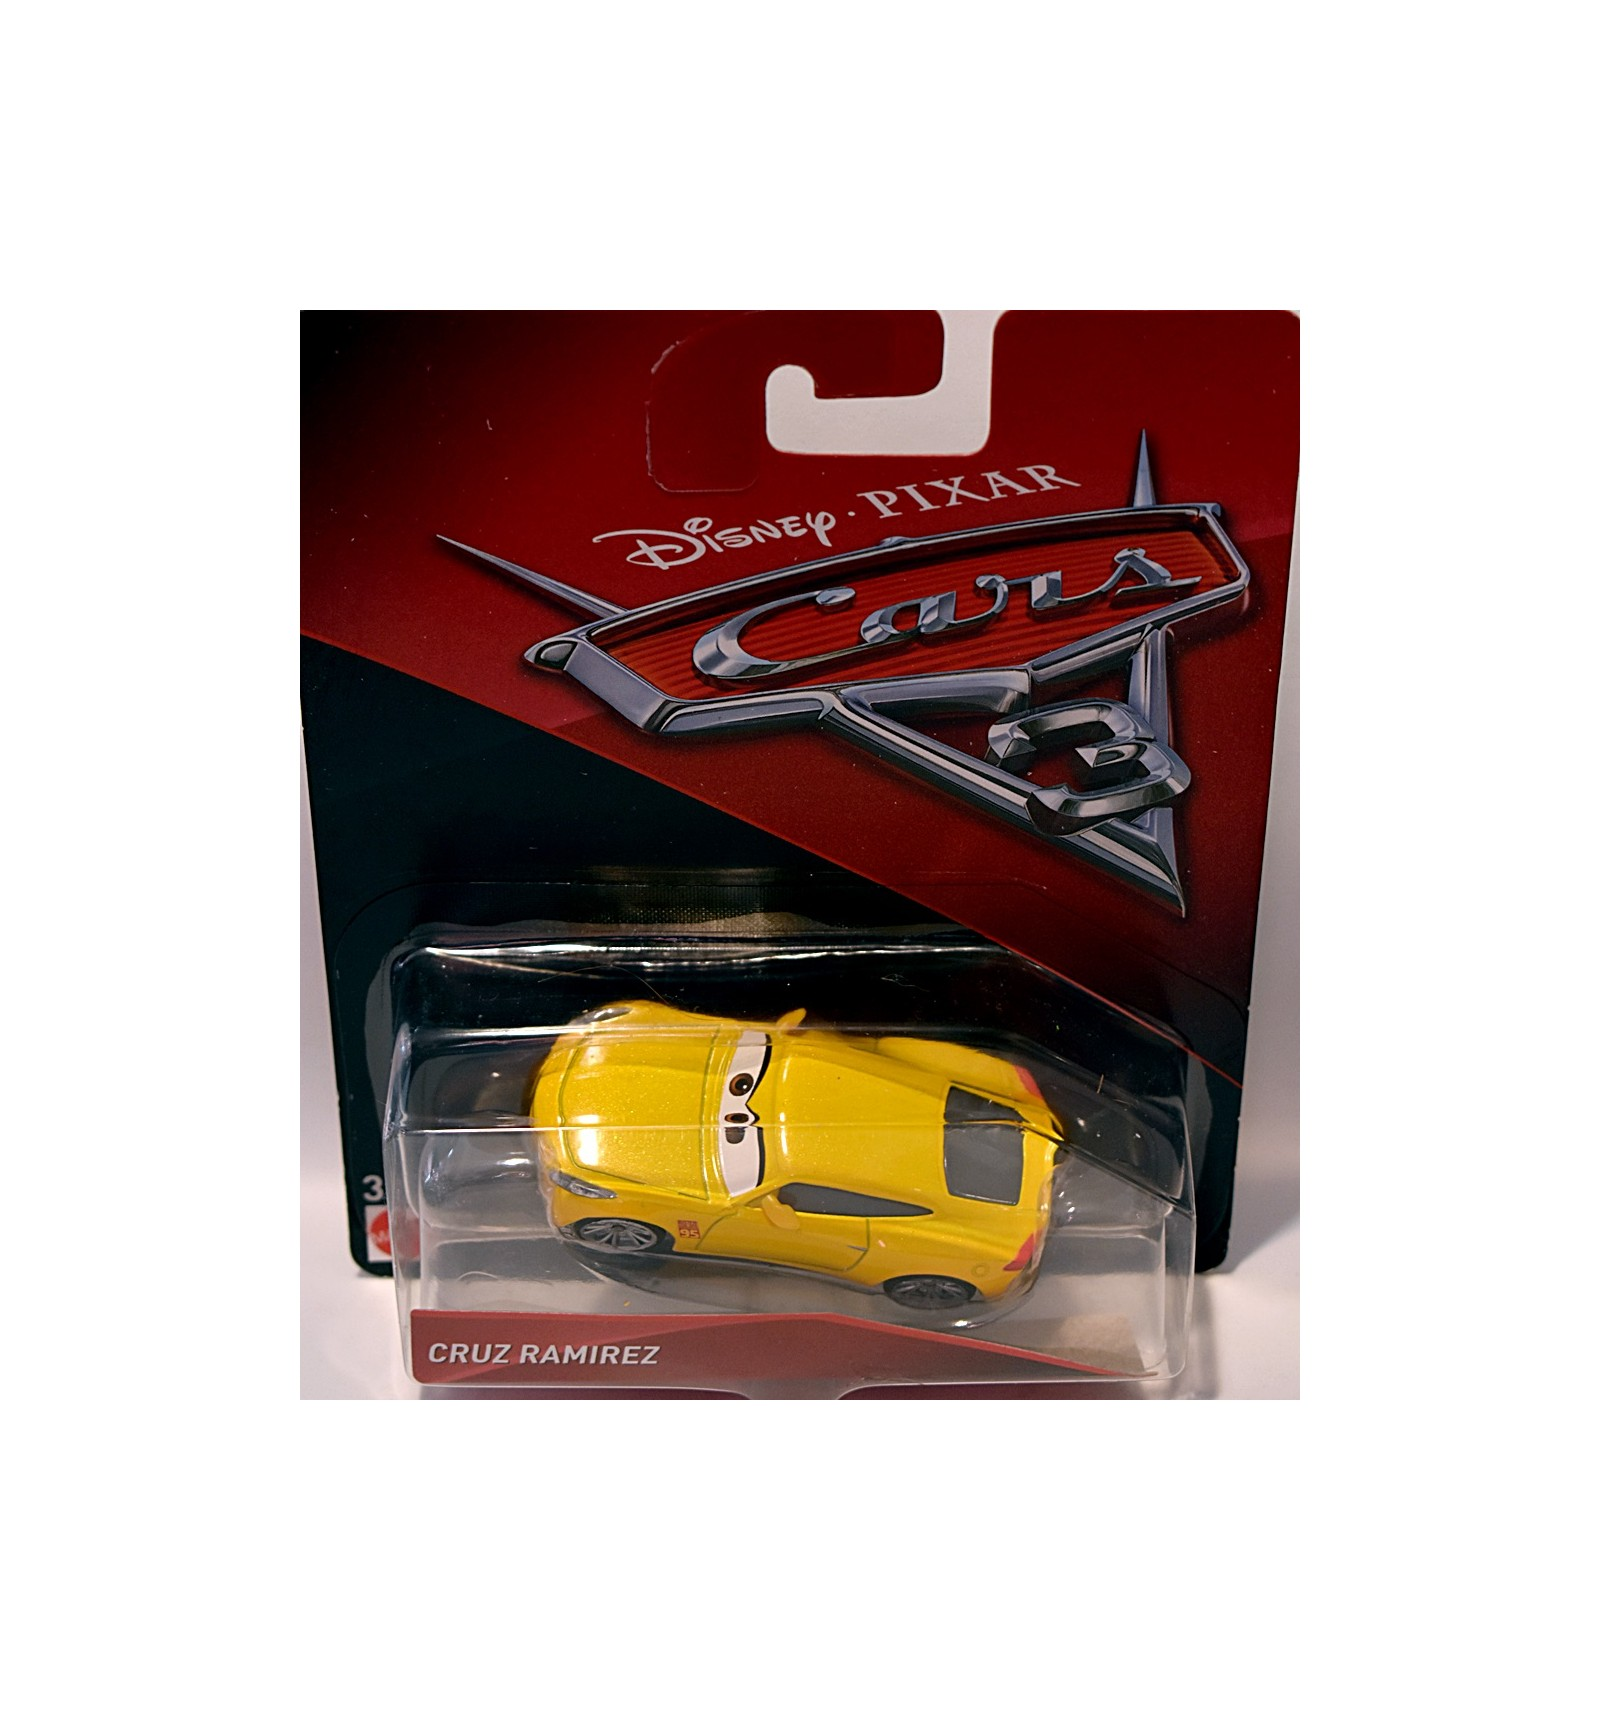 Disney Cars 3 Cruz Ramirez Honda Del Sol Global Diecast Direct